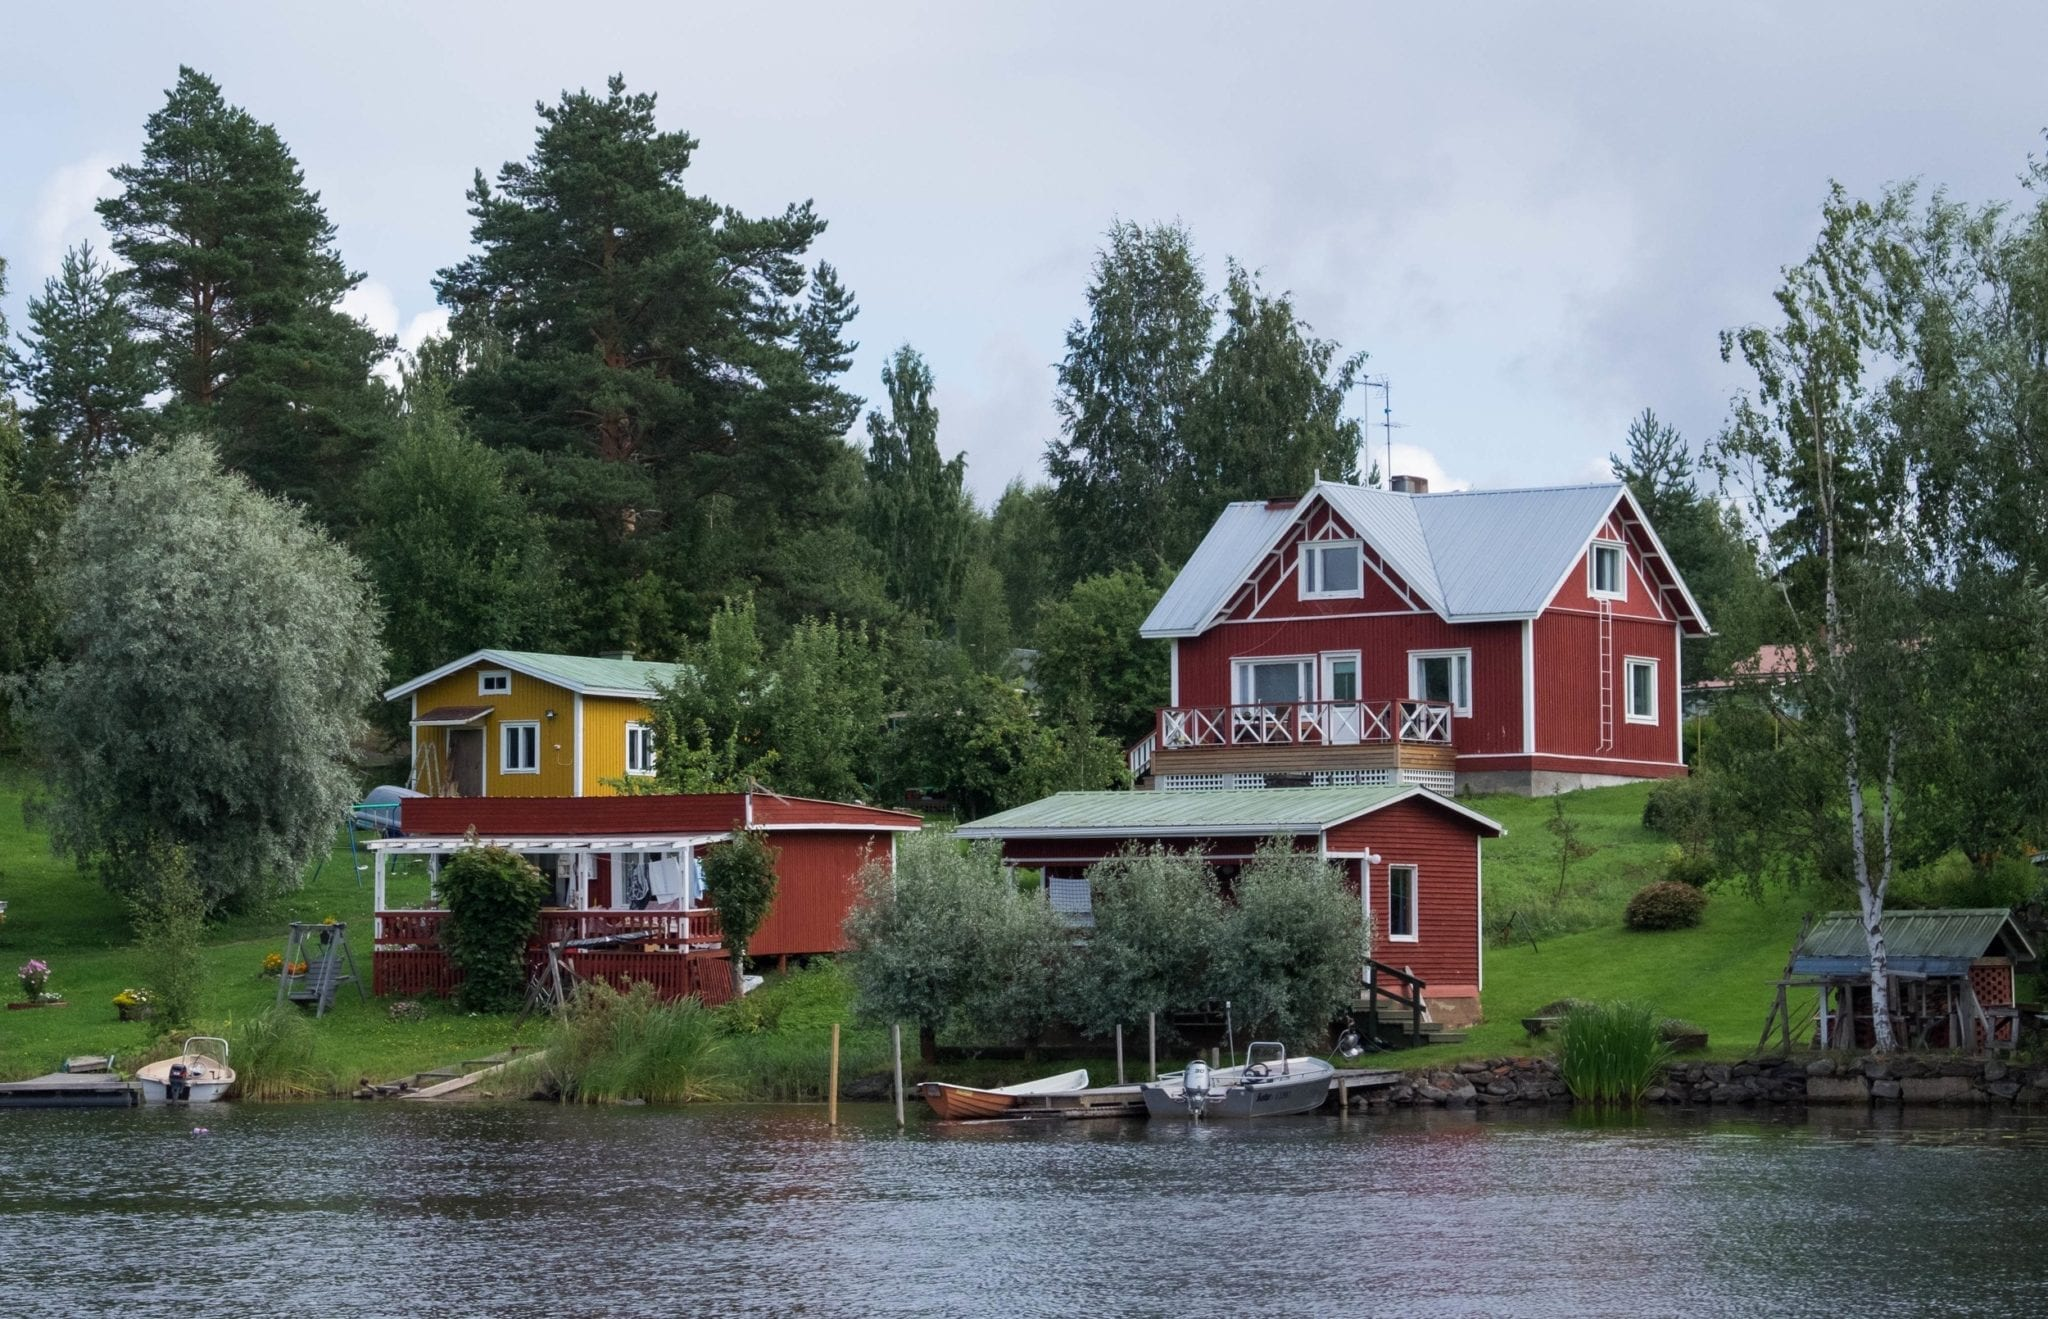 Finland in the Summer: Quirky, Isolated, and Pretty | Adventurous